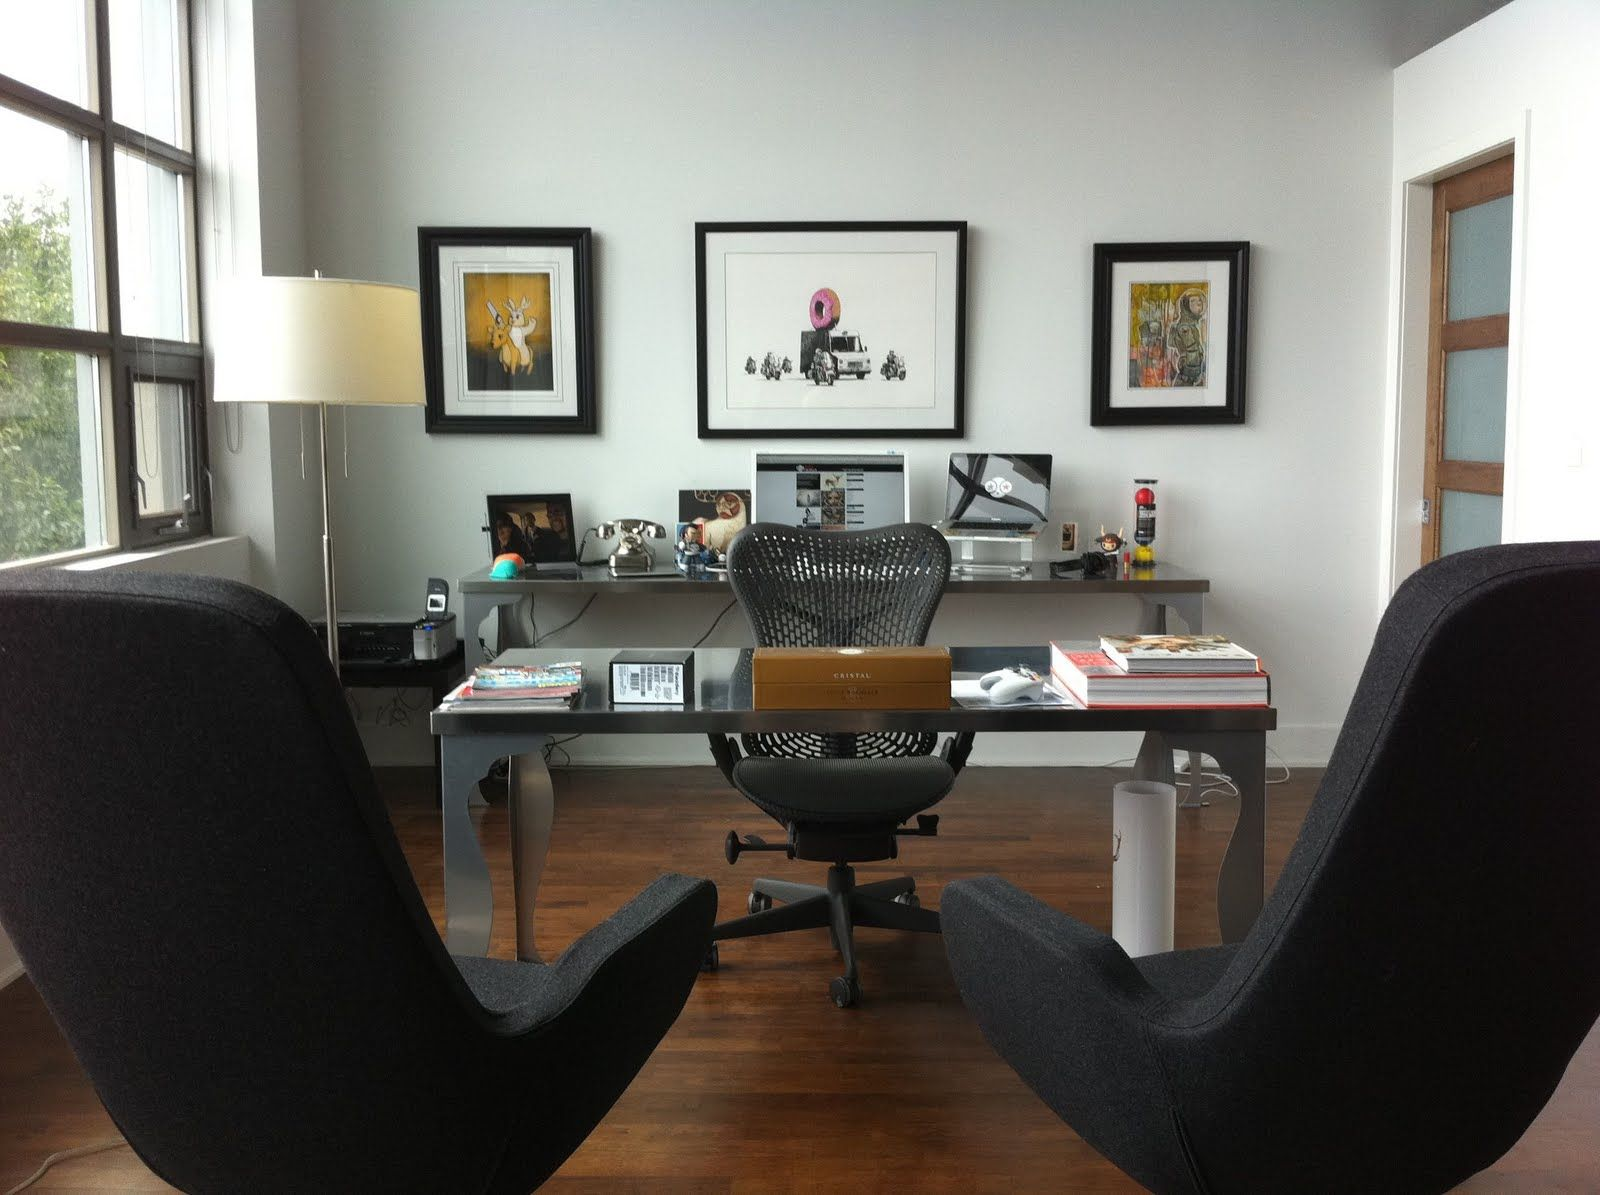 100 awesome corporate wall photo gallery ideas office hacks